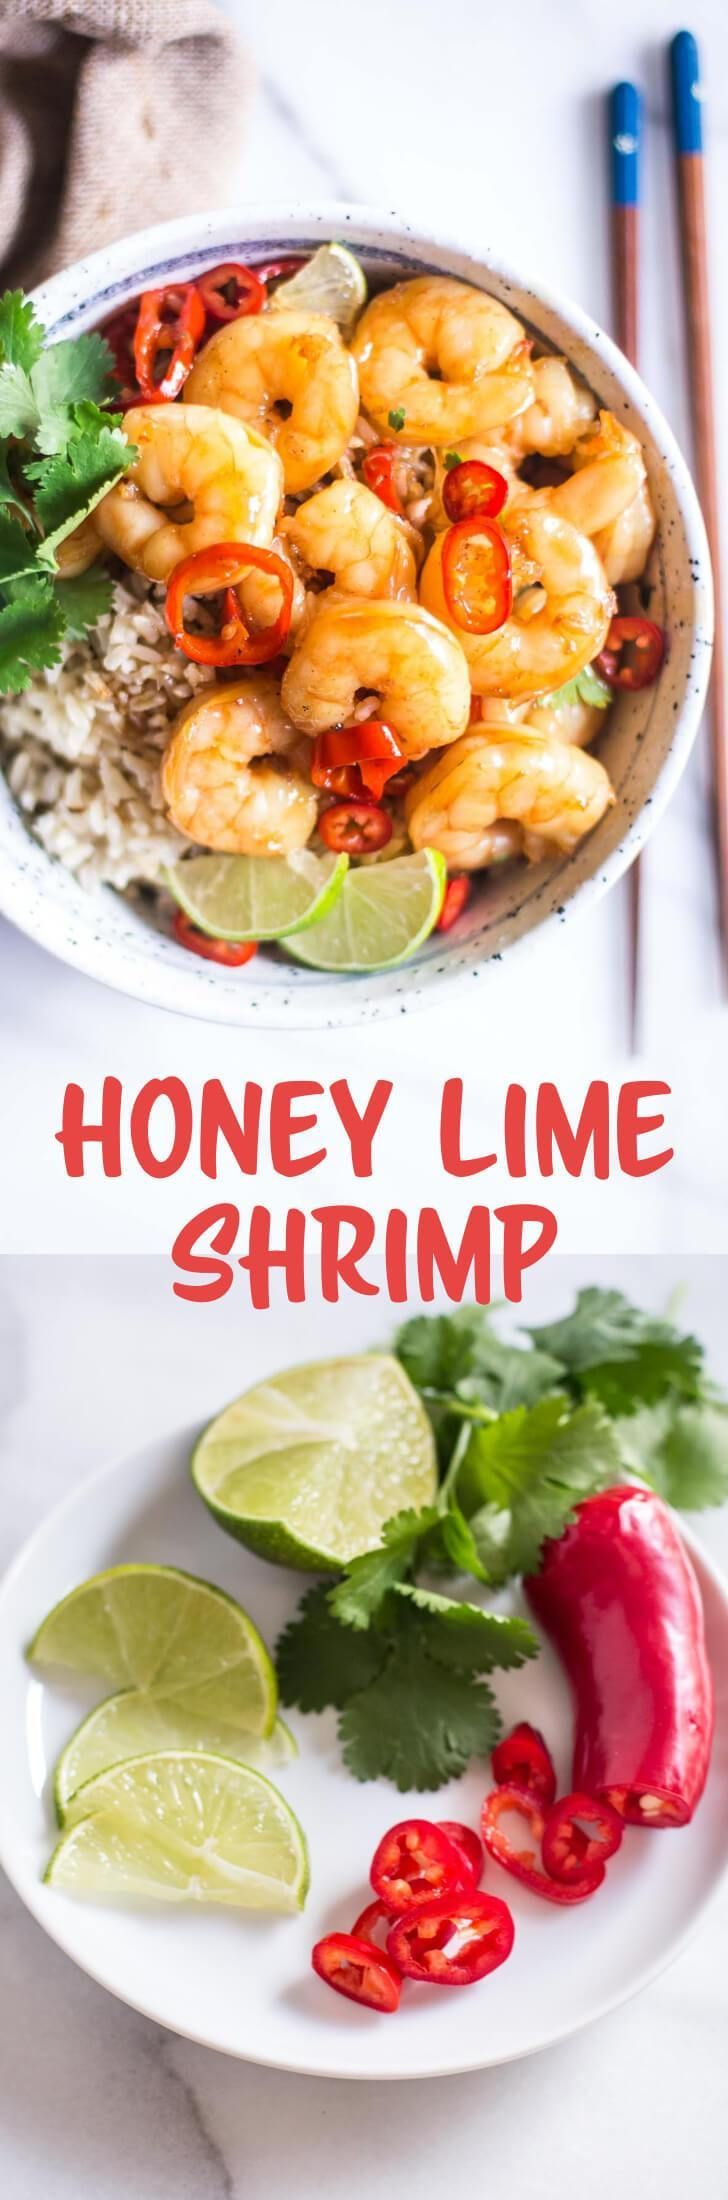 Lovely Honey Lime Shrimp   A Sweet And Savory Sauce Coats Shrimp In This Super  Fast Dinner